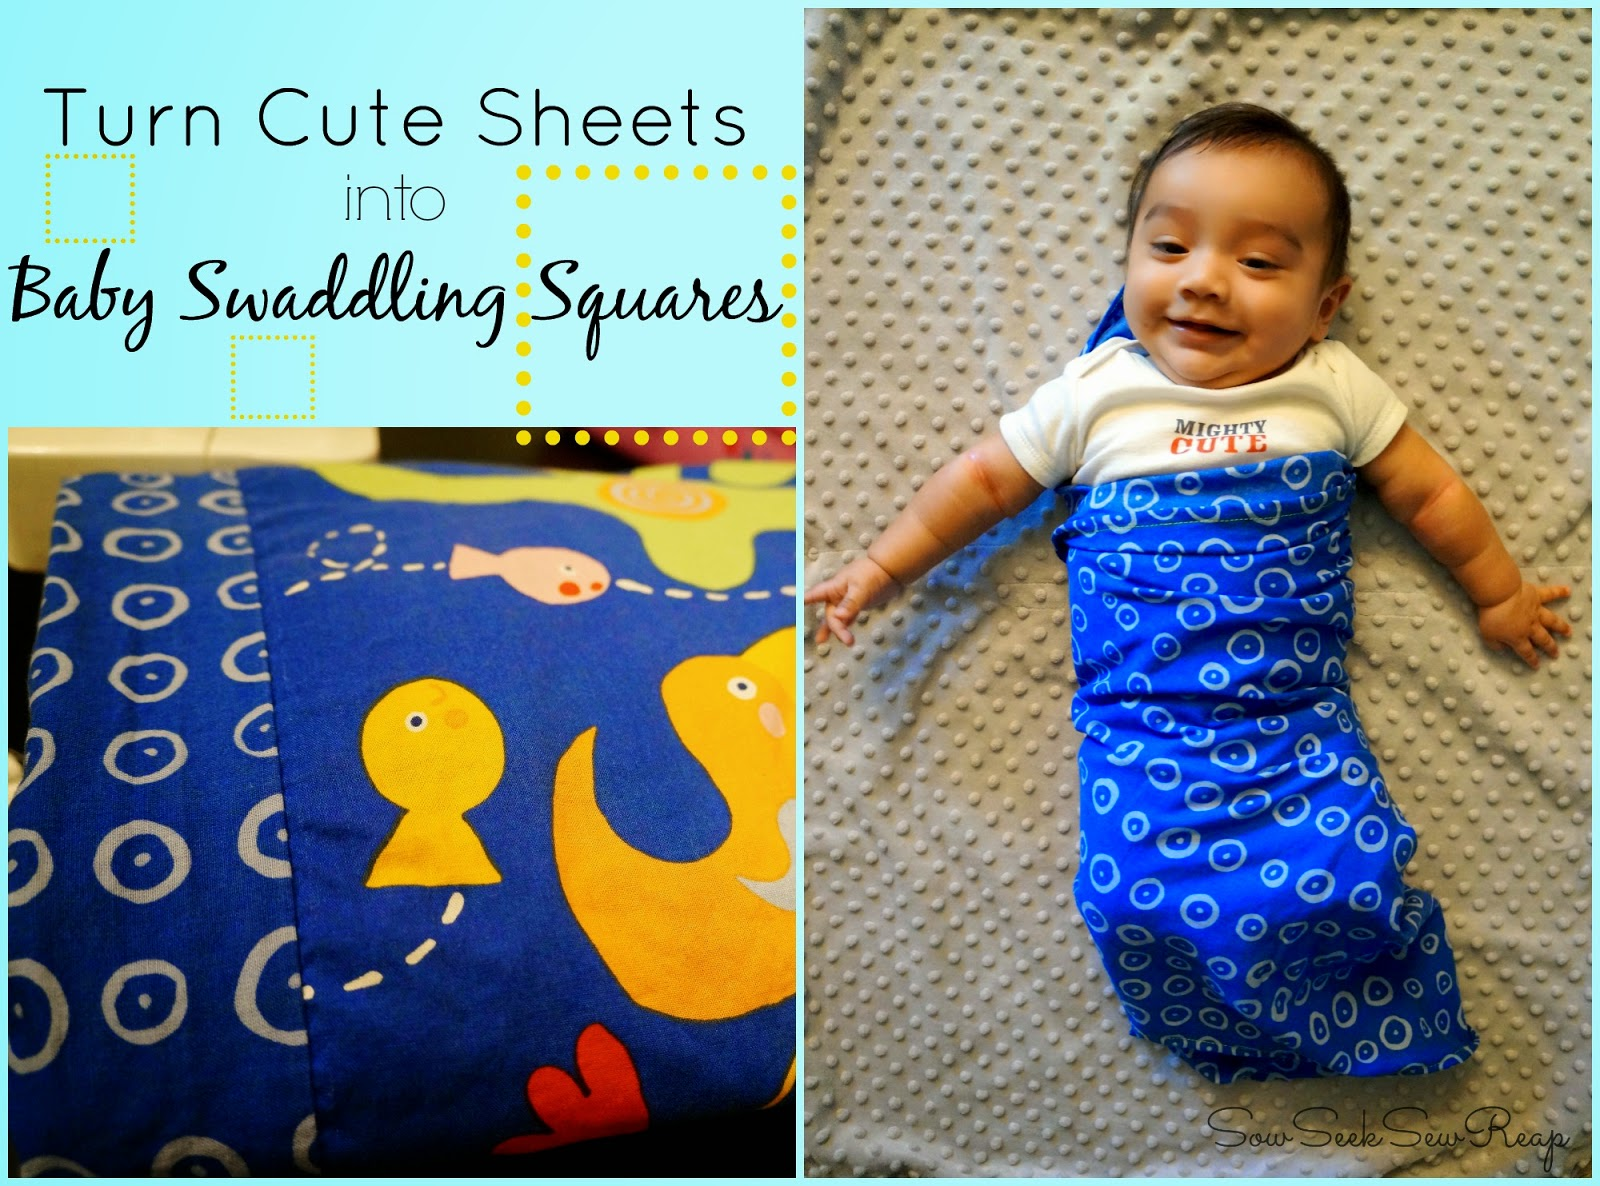 SWADDLING SQUARES, REUSING BED SHEETS, BED SHEETS INTO SWADDLING SQUARES